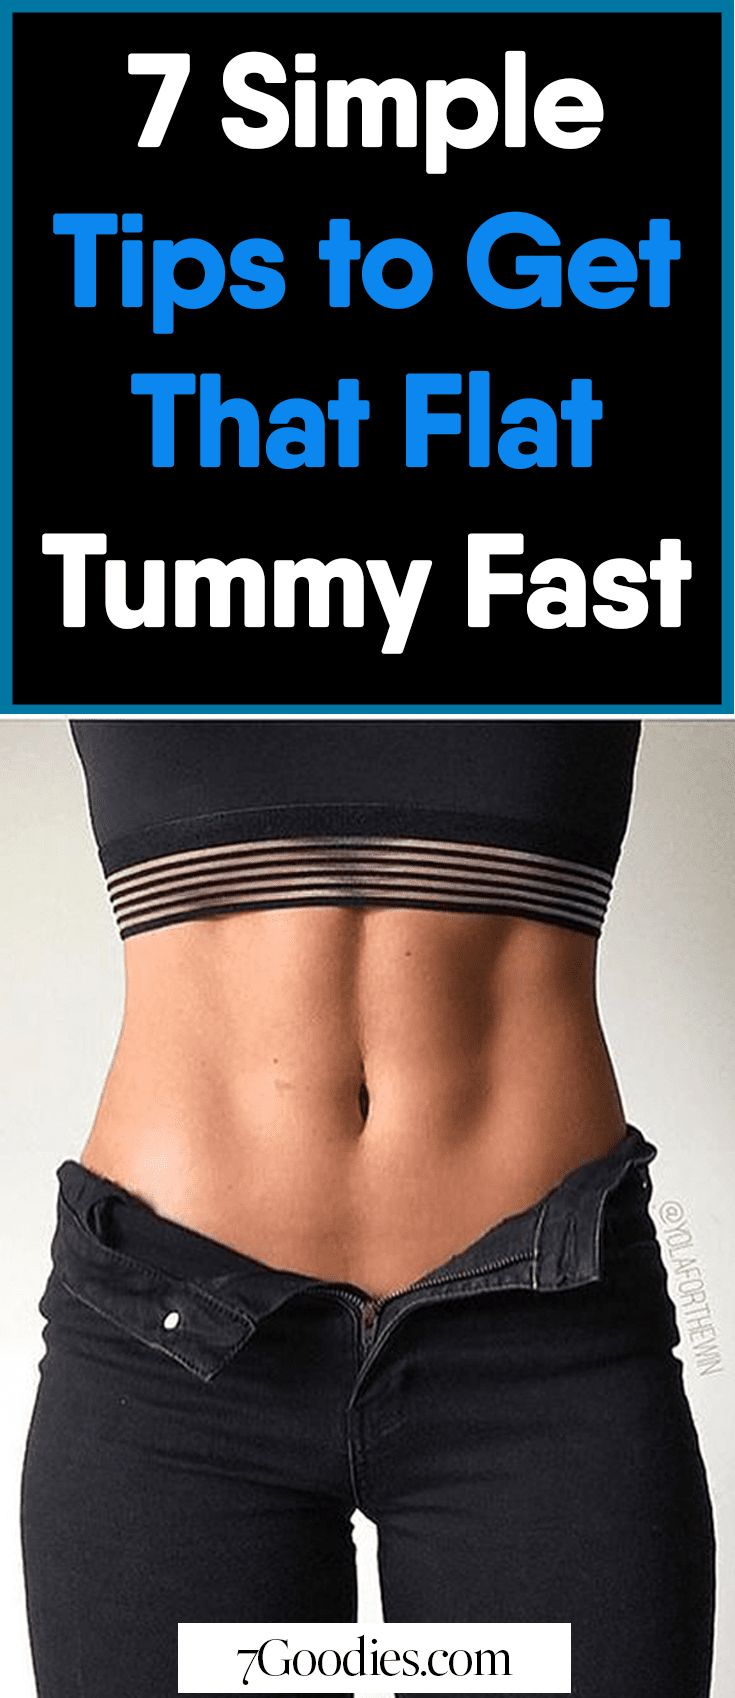 simple healthy tips to reduce belly fat and get a flat tummy